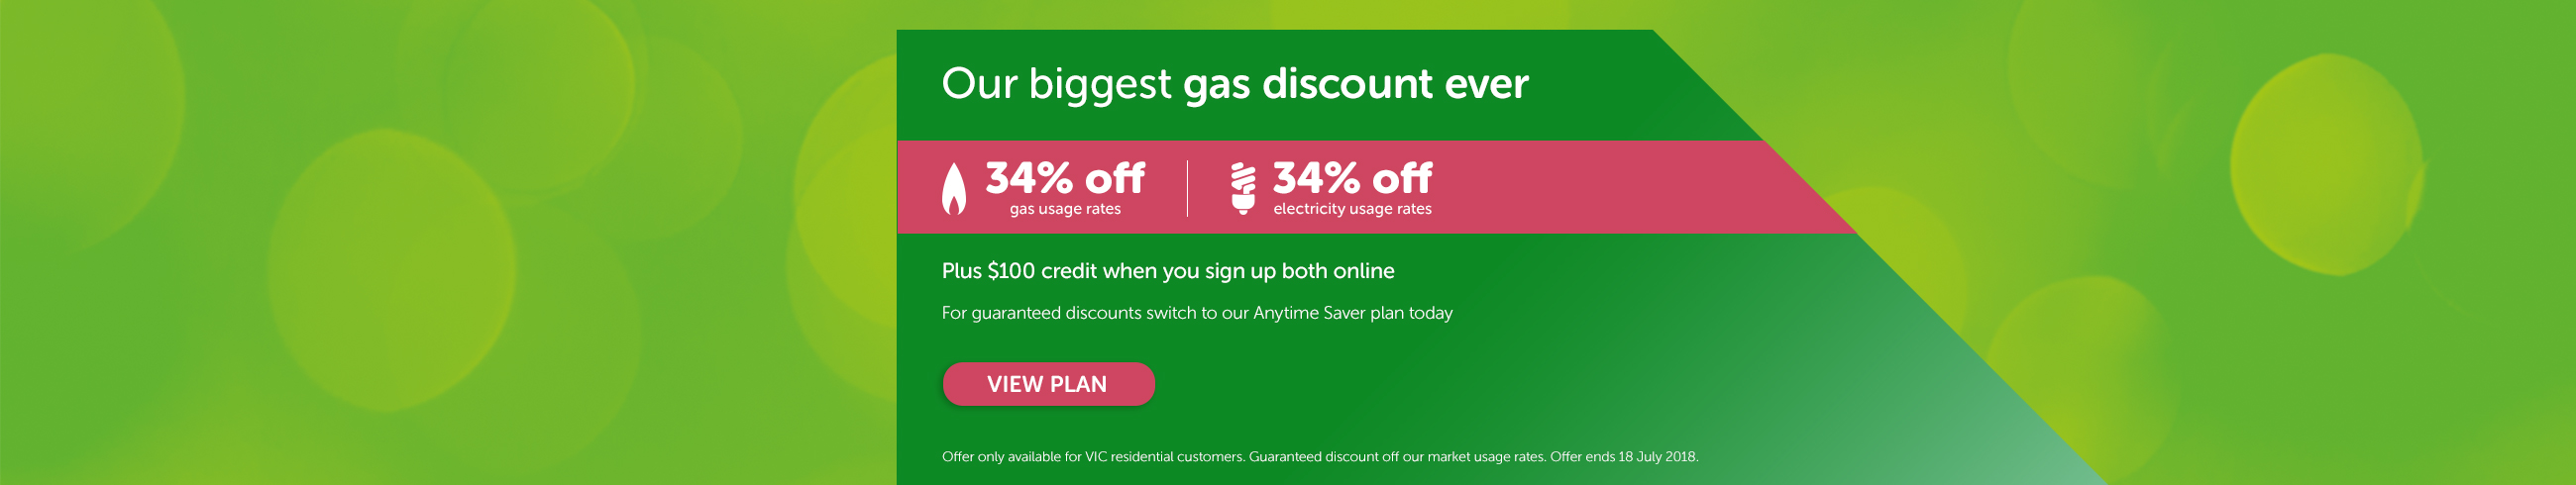 Our biggest gas discount ever - Plus $100 credit when you sign up both online